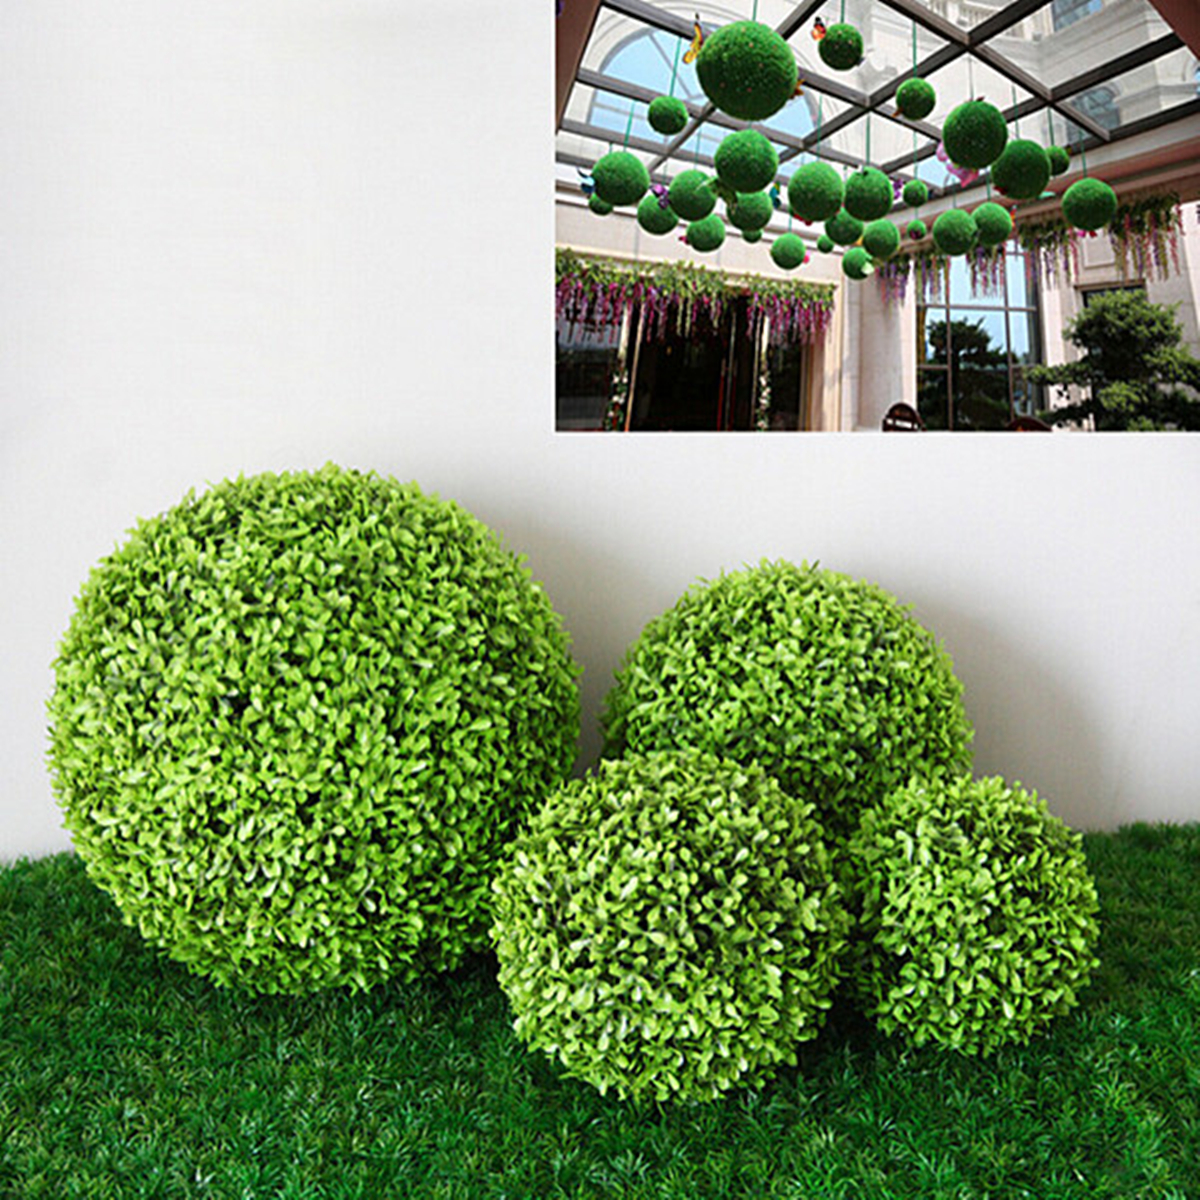 One Artificial Grass Ball Indoor Outdoor Topiary Tree Plant Pool Patio Decor Floral Decor